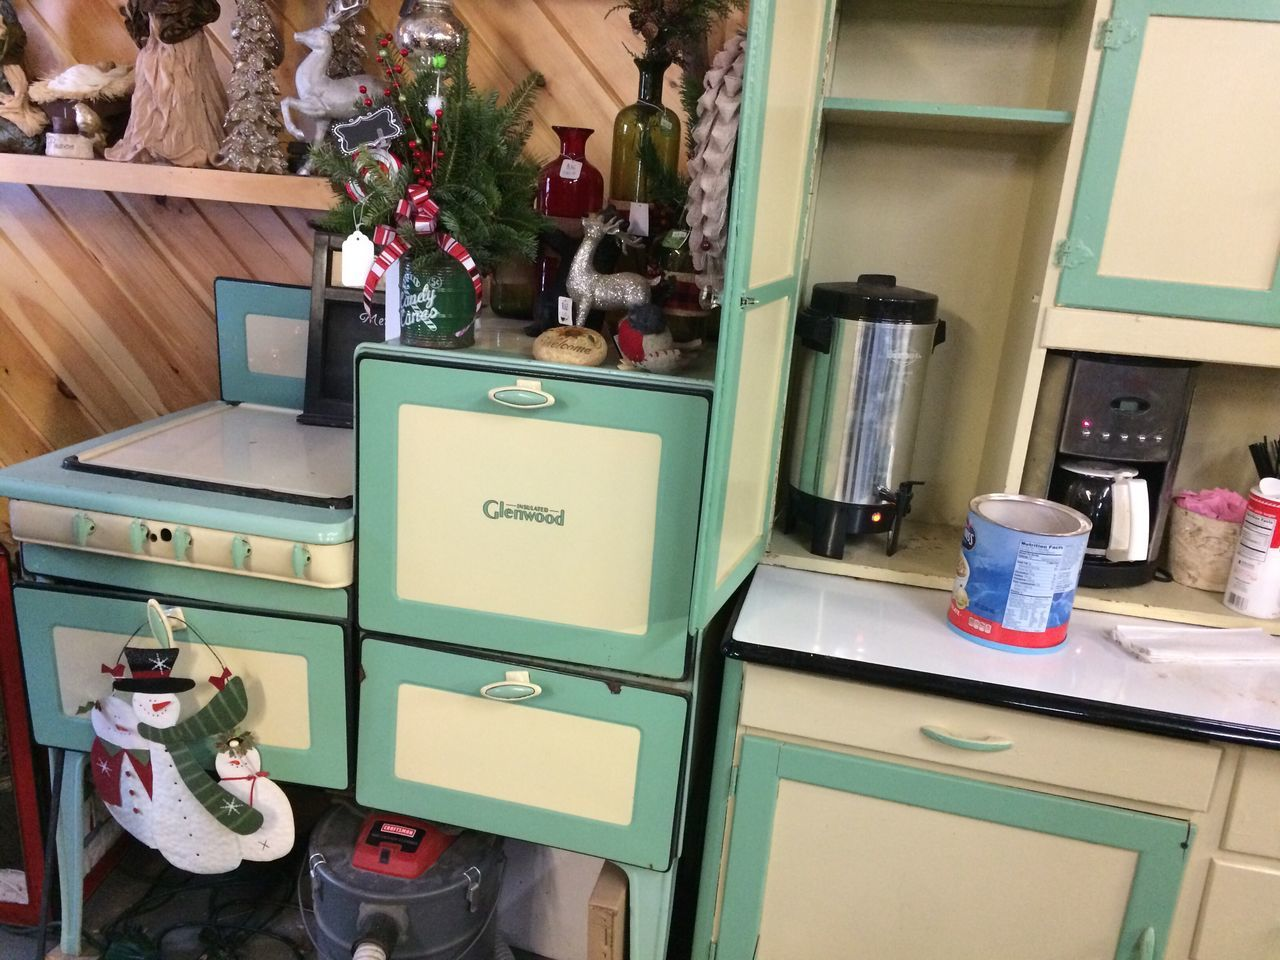 Christmas Kitchen Choice Indoors  No People For Sale Table Variation Shelf Day